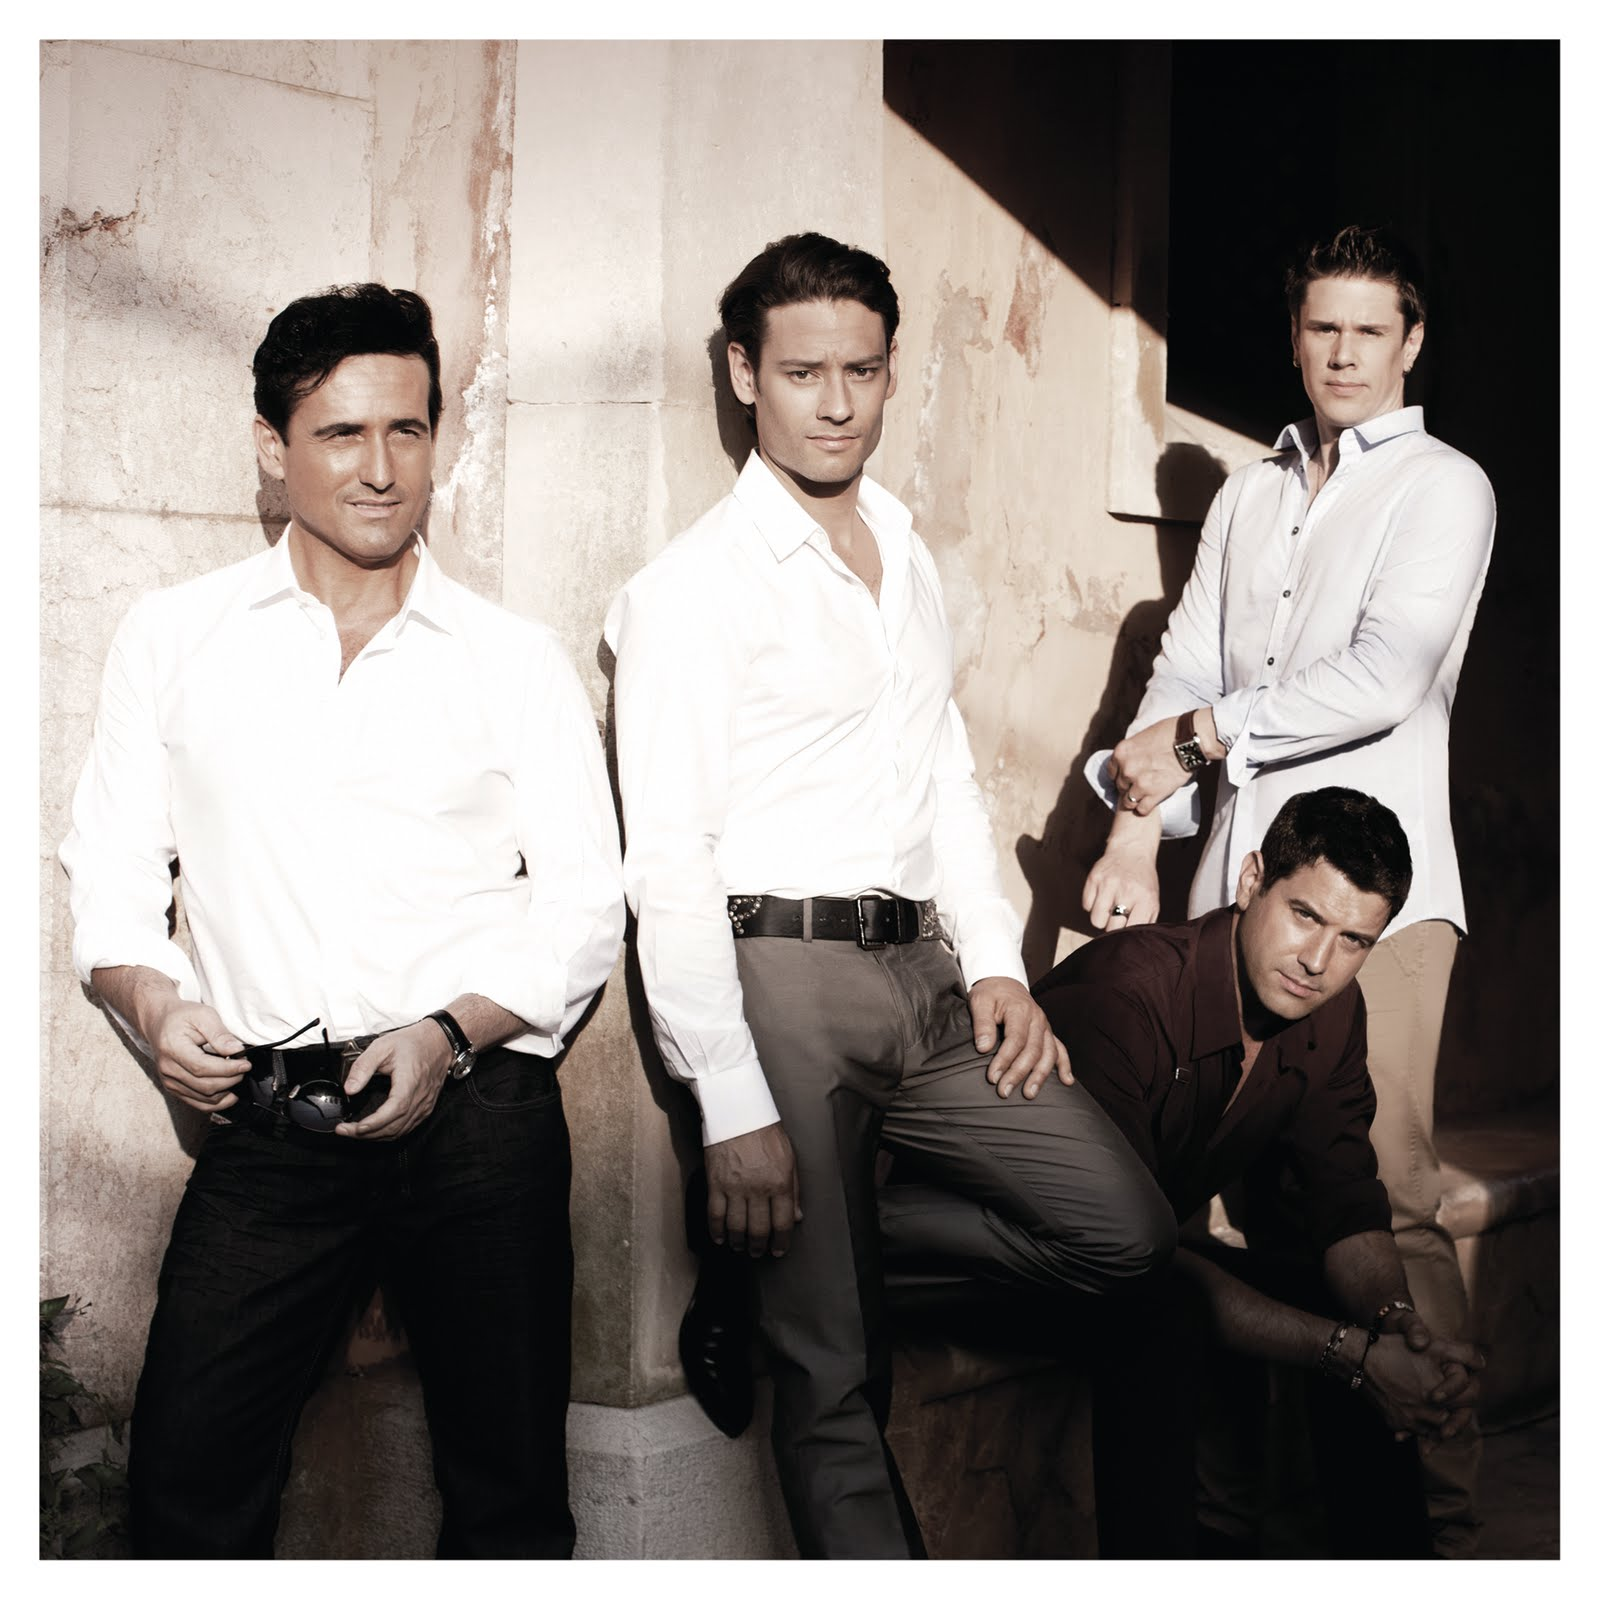 Il divo 39 s wicked game - Divo music group ...